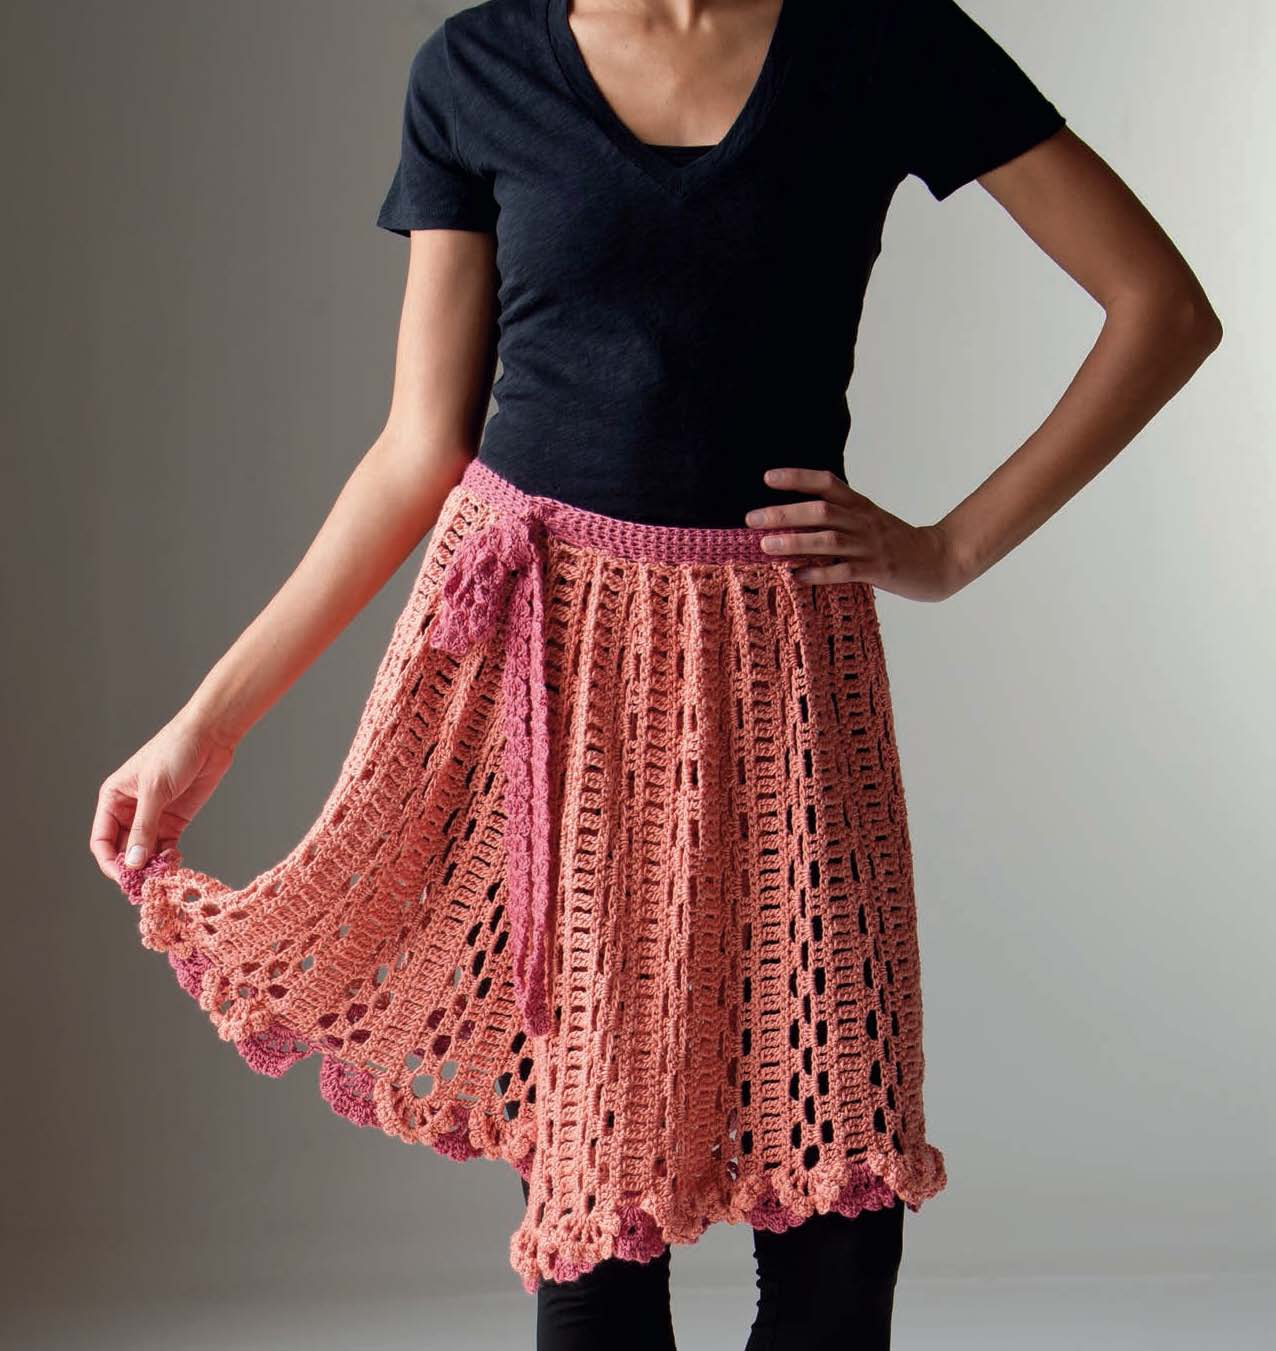 Woman wearing a black t-shirt and leggings and a crochet lace skirt in orange and pink.